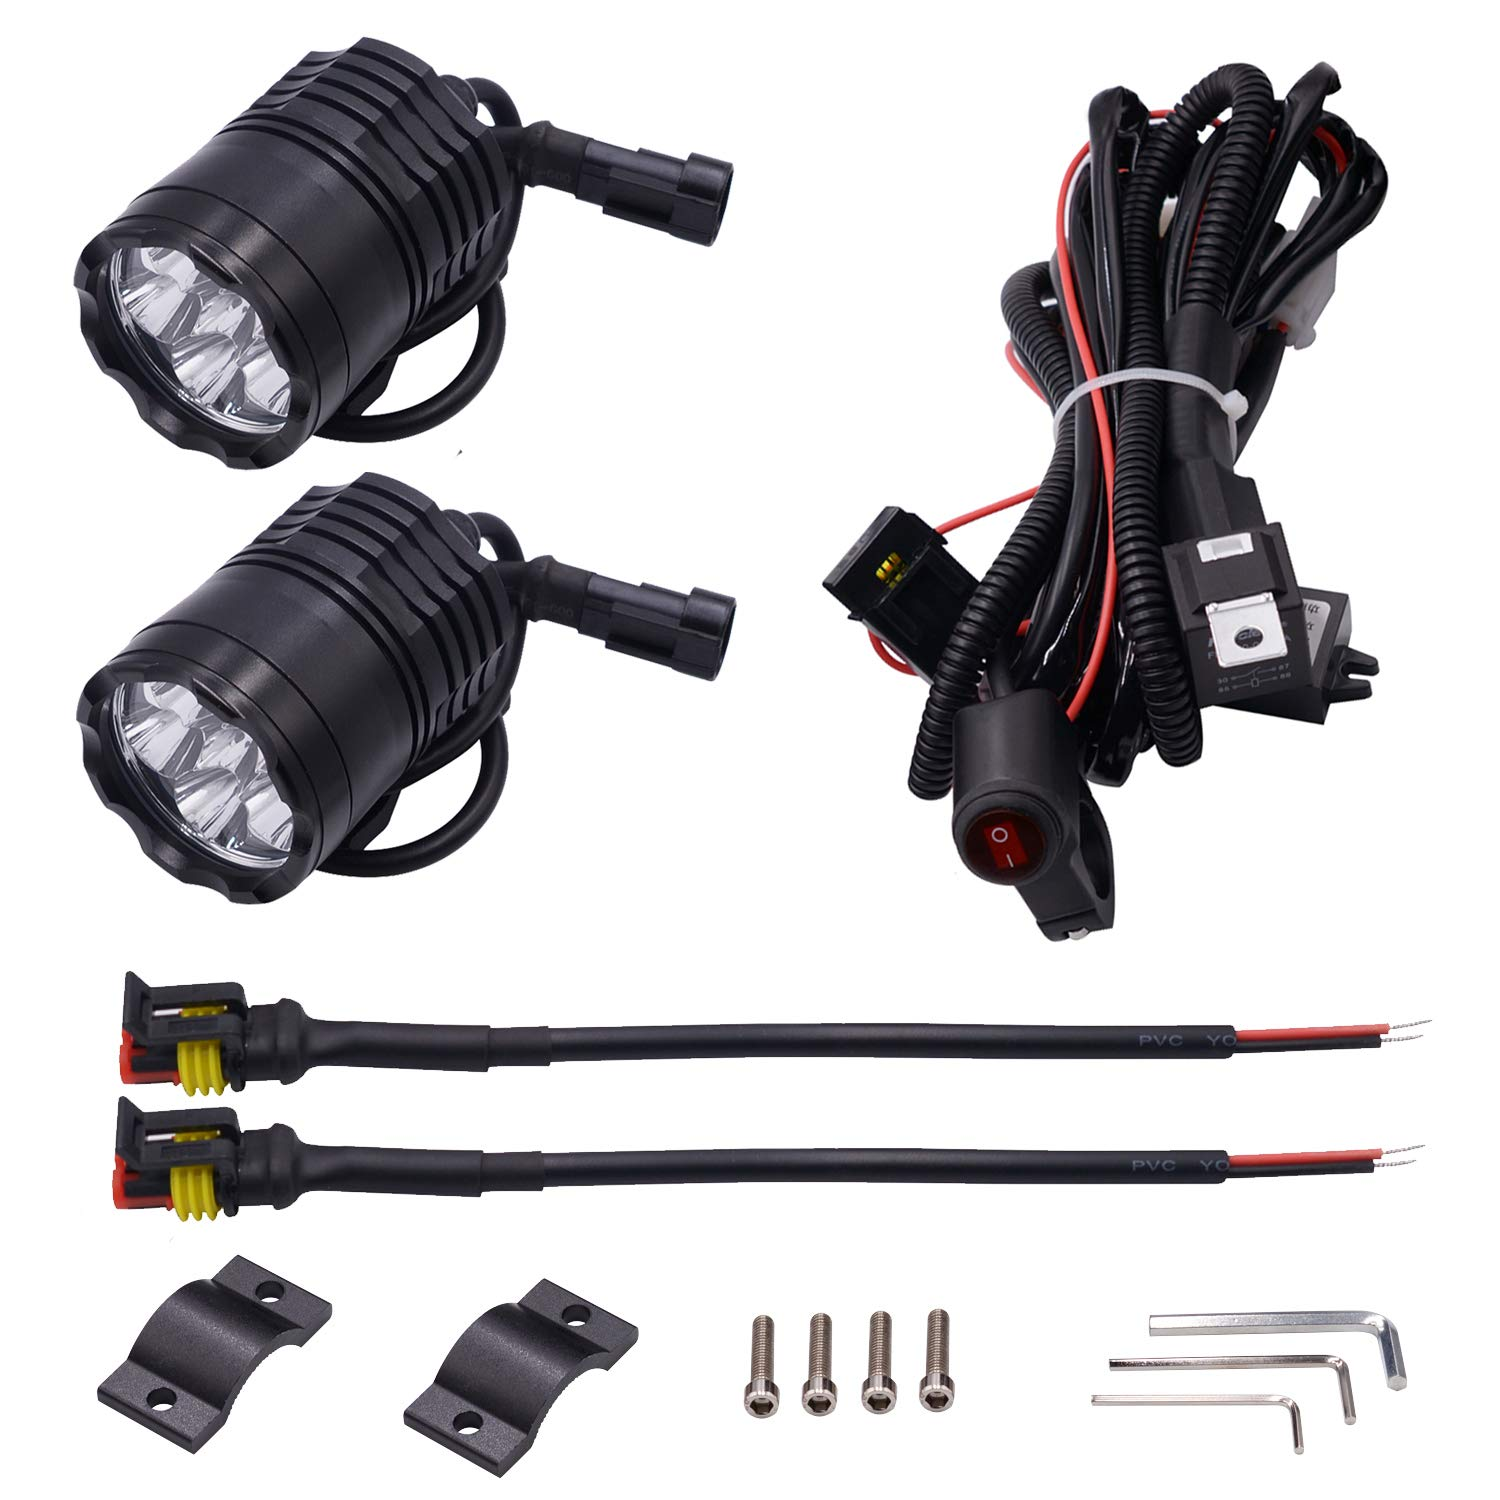 5559077086 E-Bro 2PCS Black Waterproof IP67 Aluminium Alloy 6 LED Beam Headlights 12V 60W 4000LM with LED Light Bar Wiring Harness Kit for Motorcycle Scooter ATV 6LED, Model B